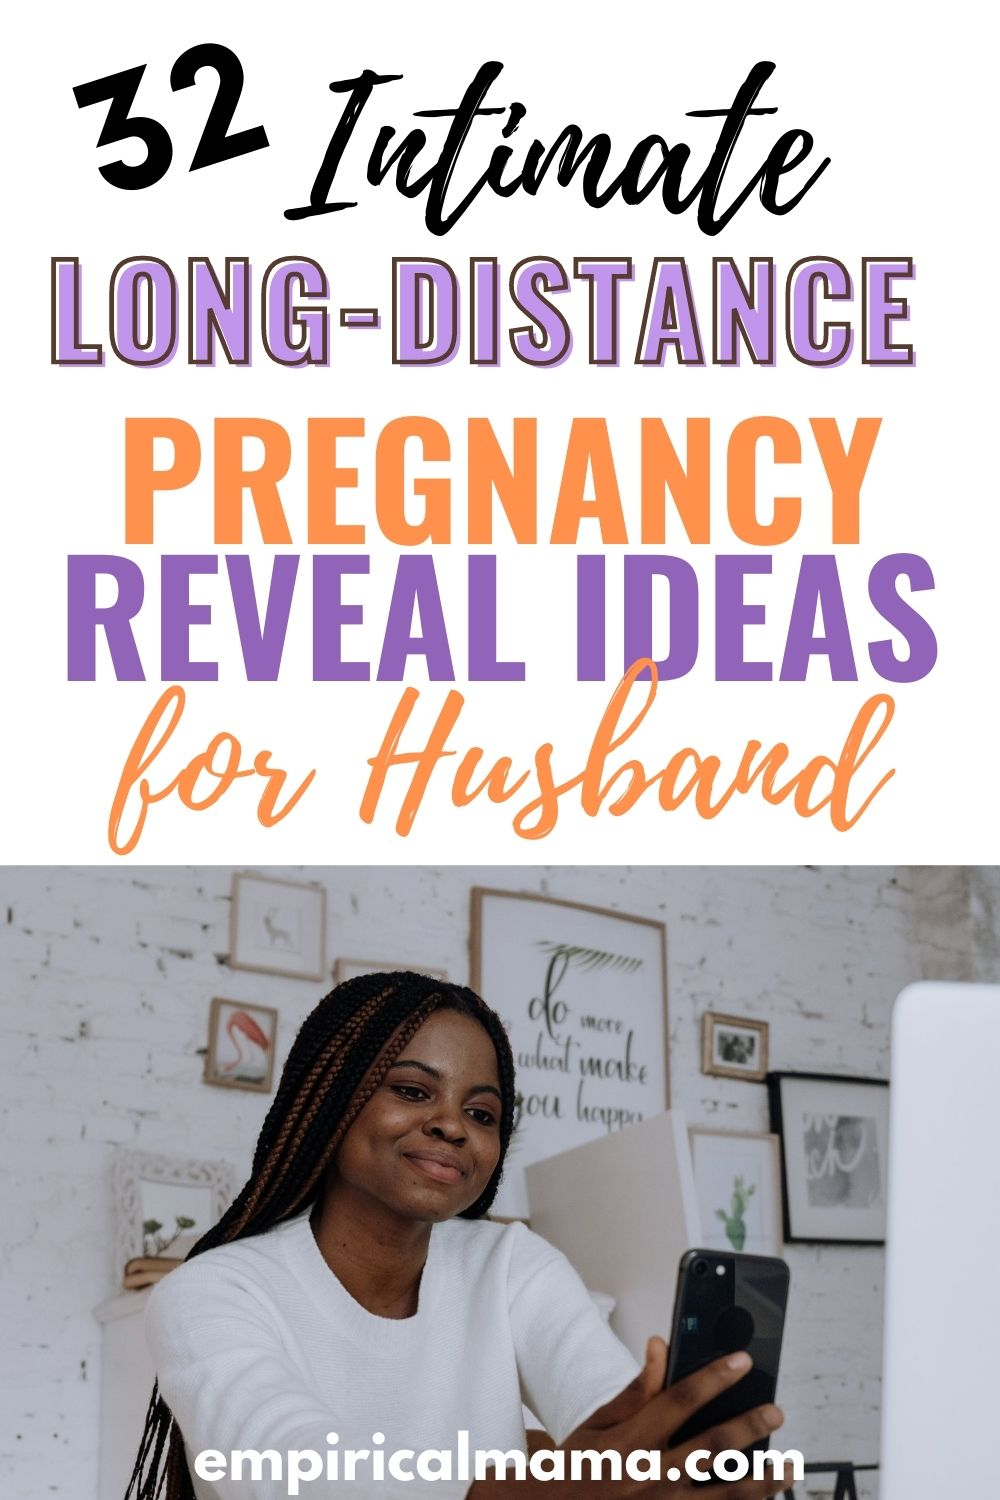 Long_distance_pregnancy_announcement_to_husband